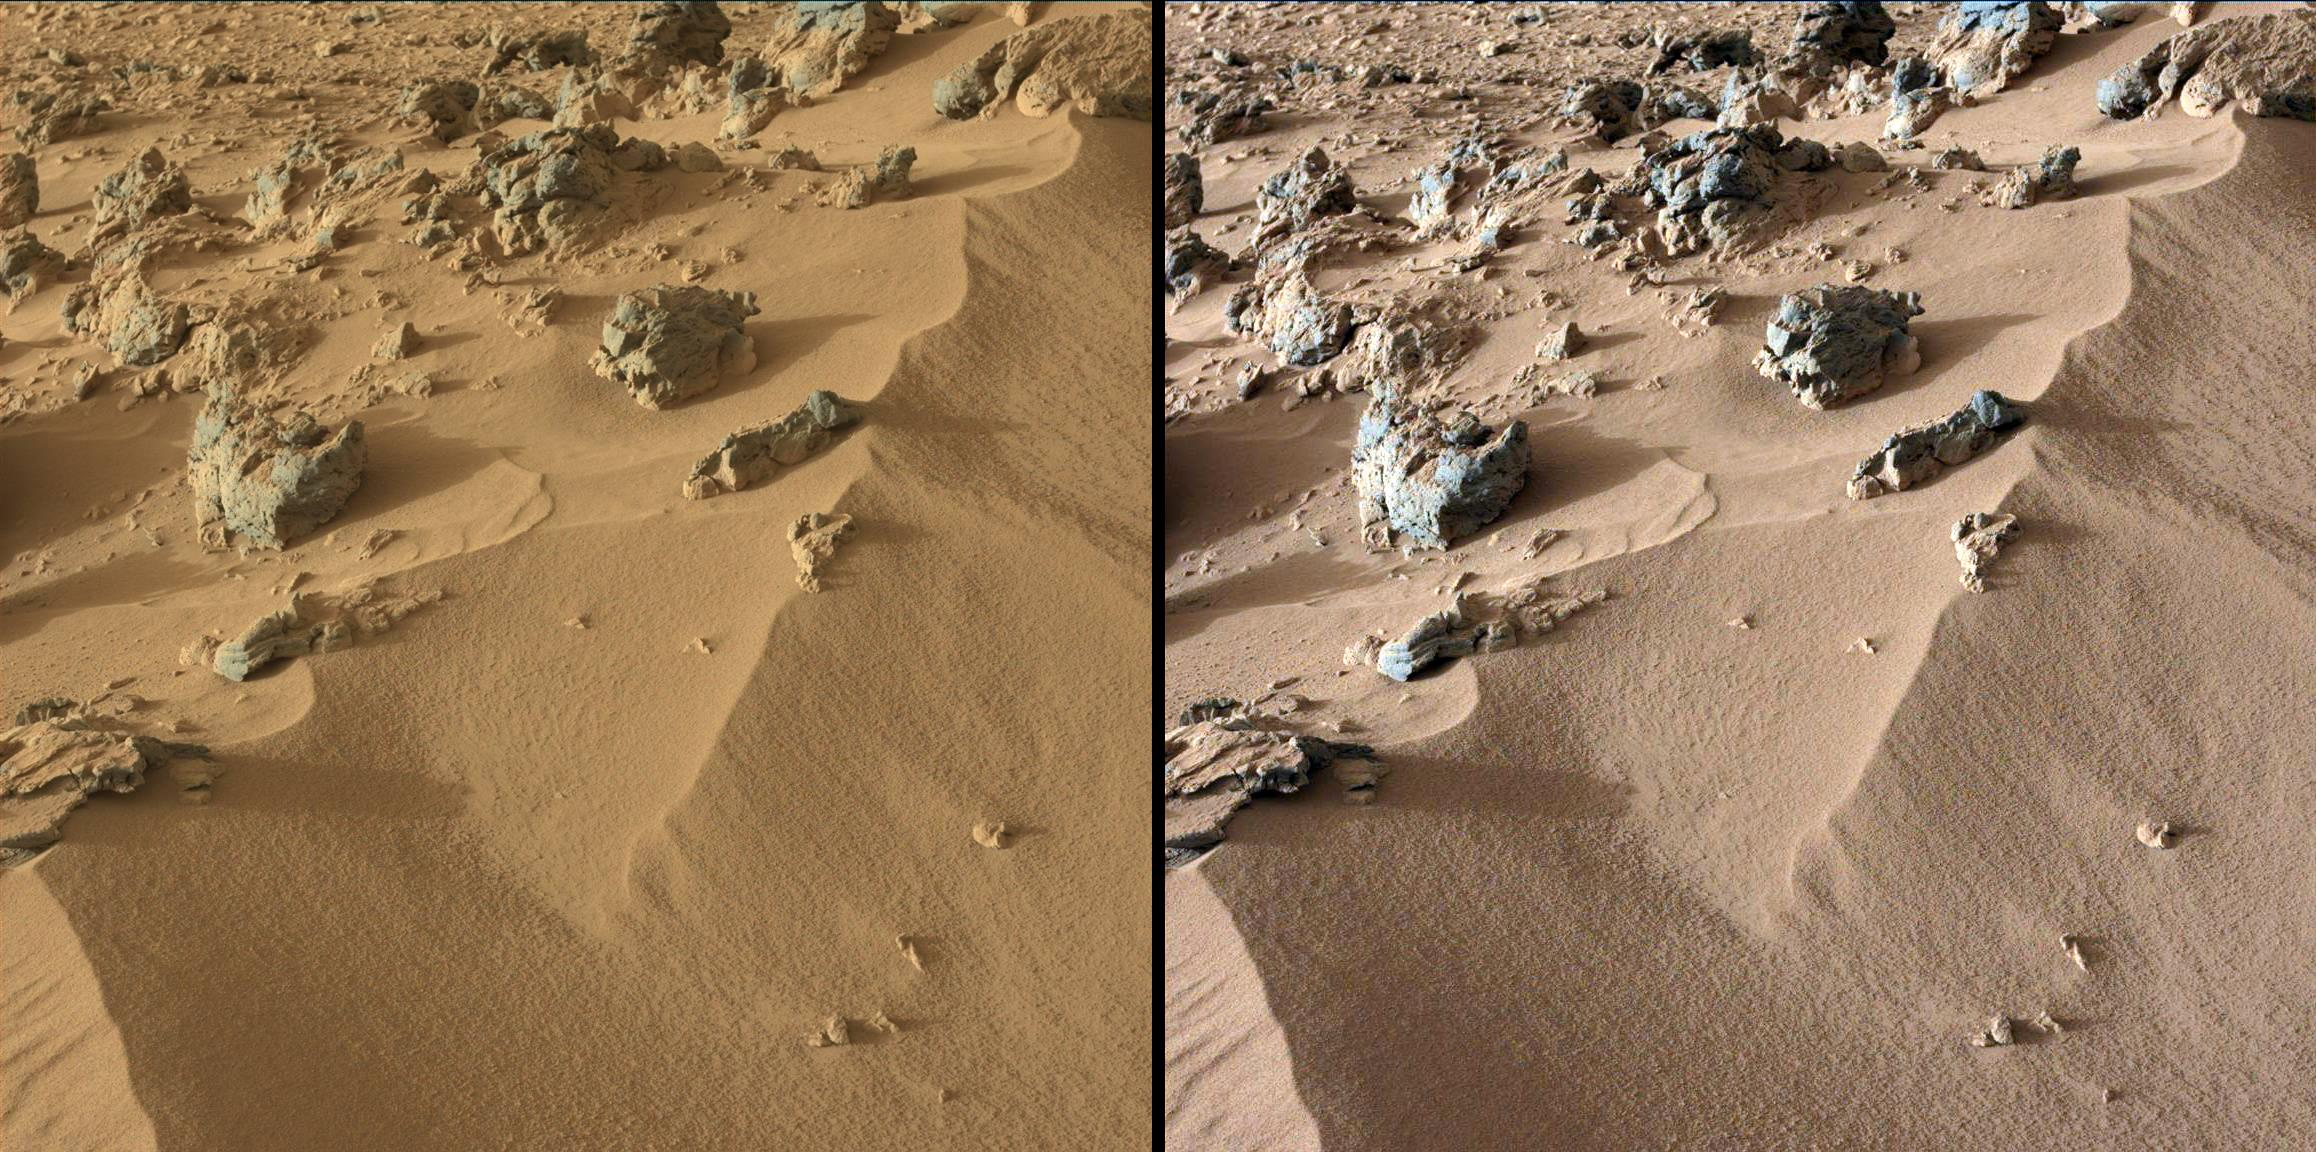 Curiosity Photos of 'Rocknest' Site